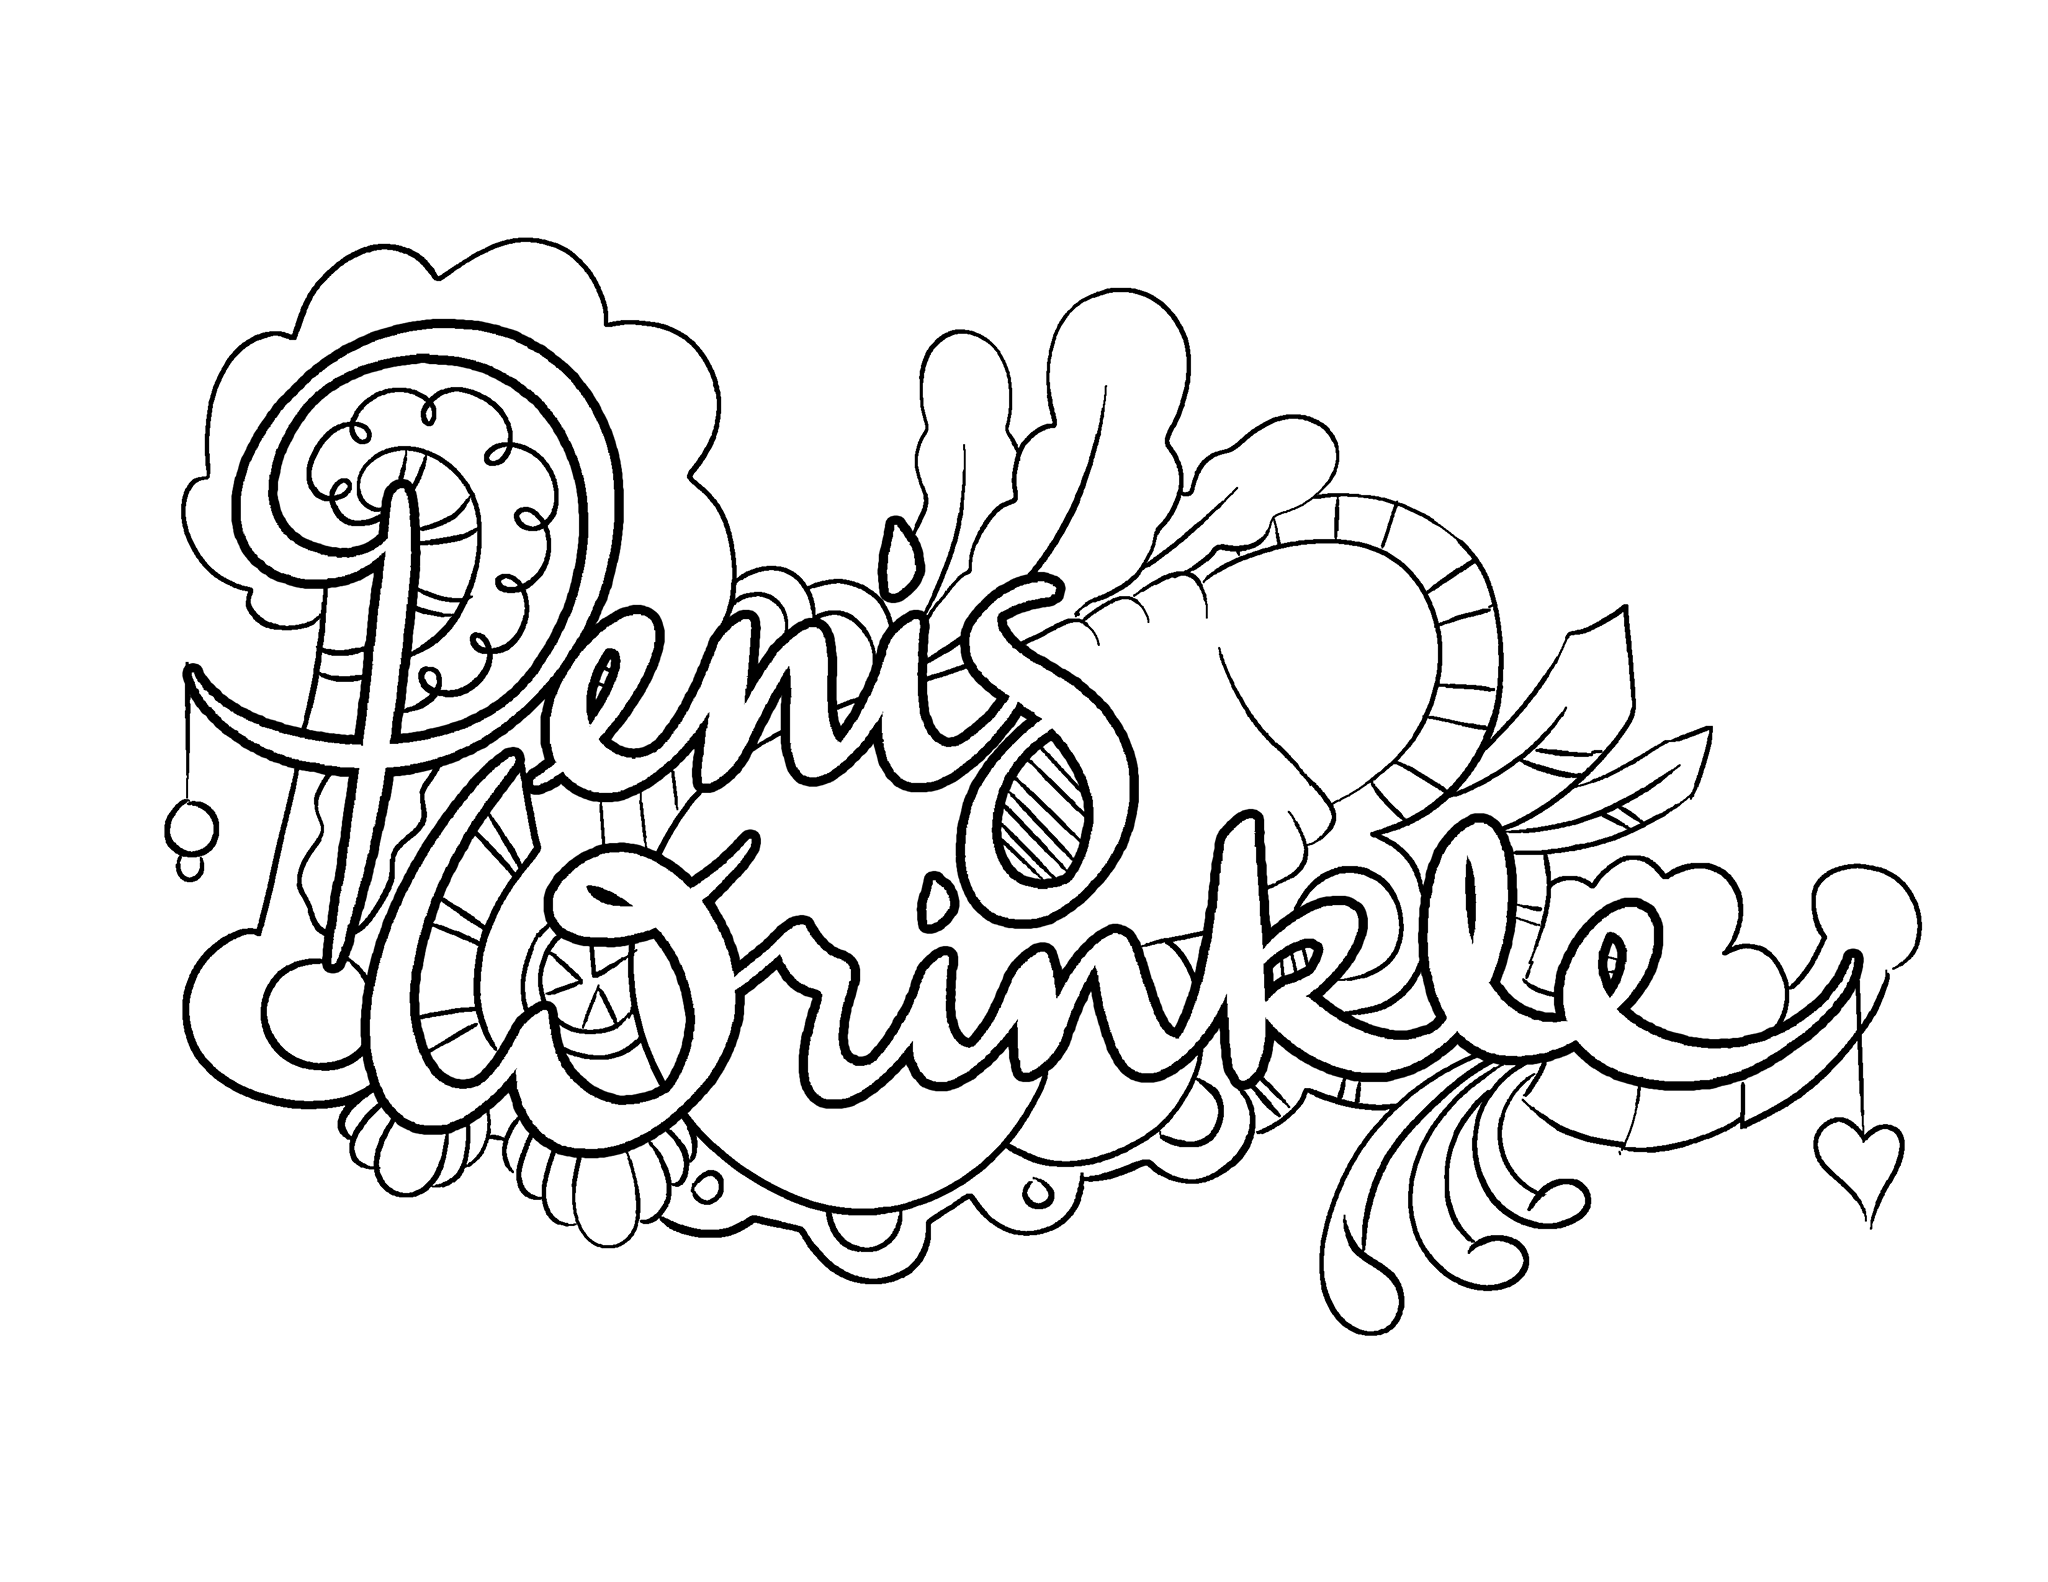 Great Penis Wrinkle   Coloring Page By Colorful Language © 2015. Posted With  Permission, Reposting